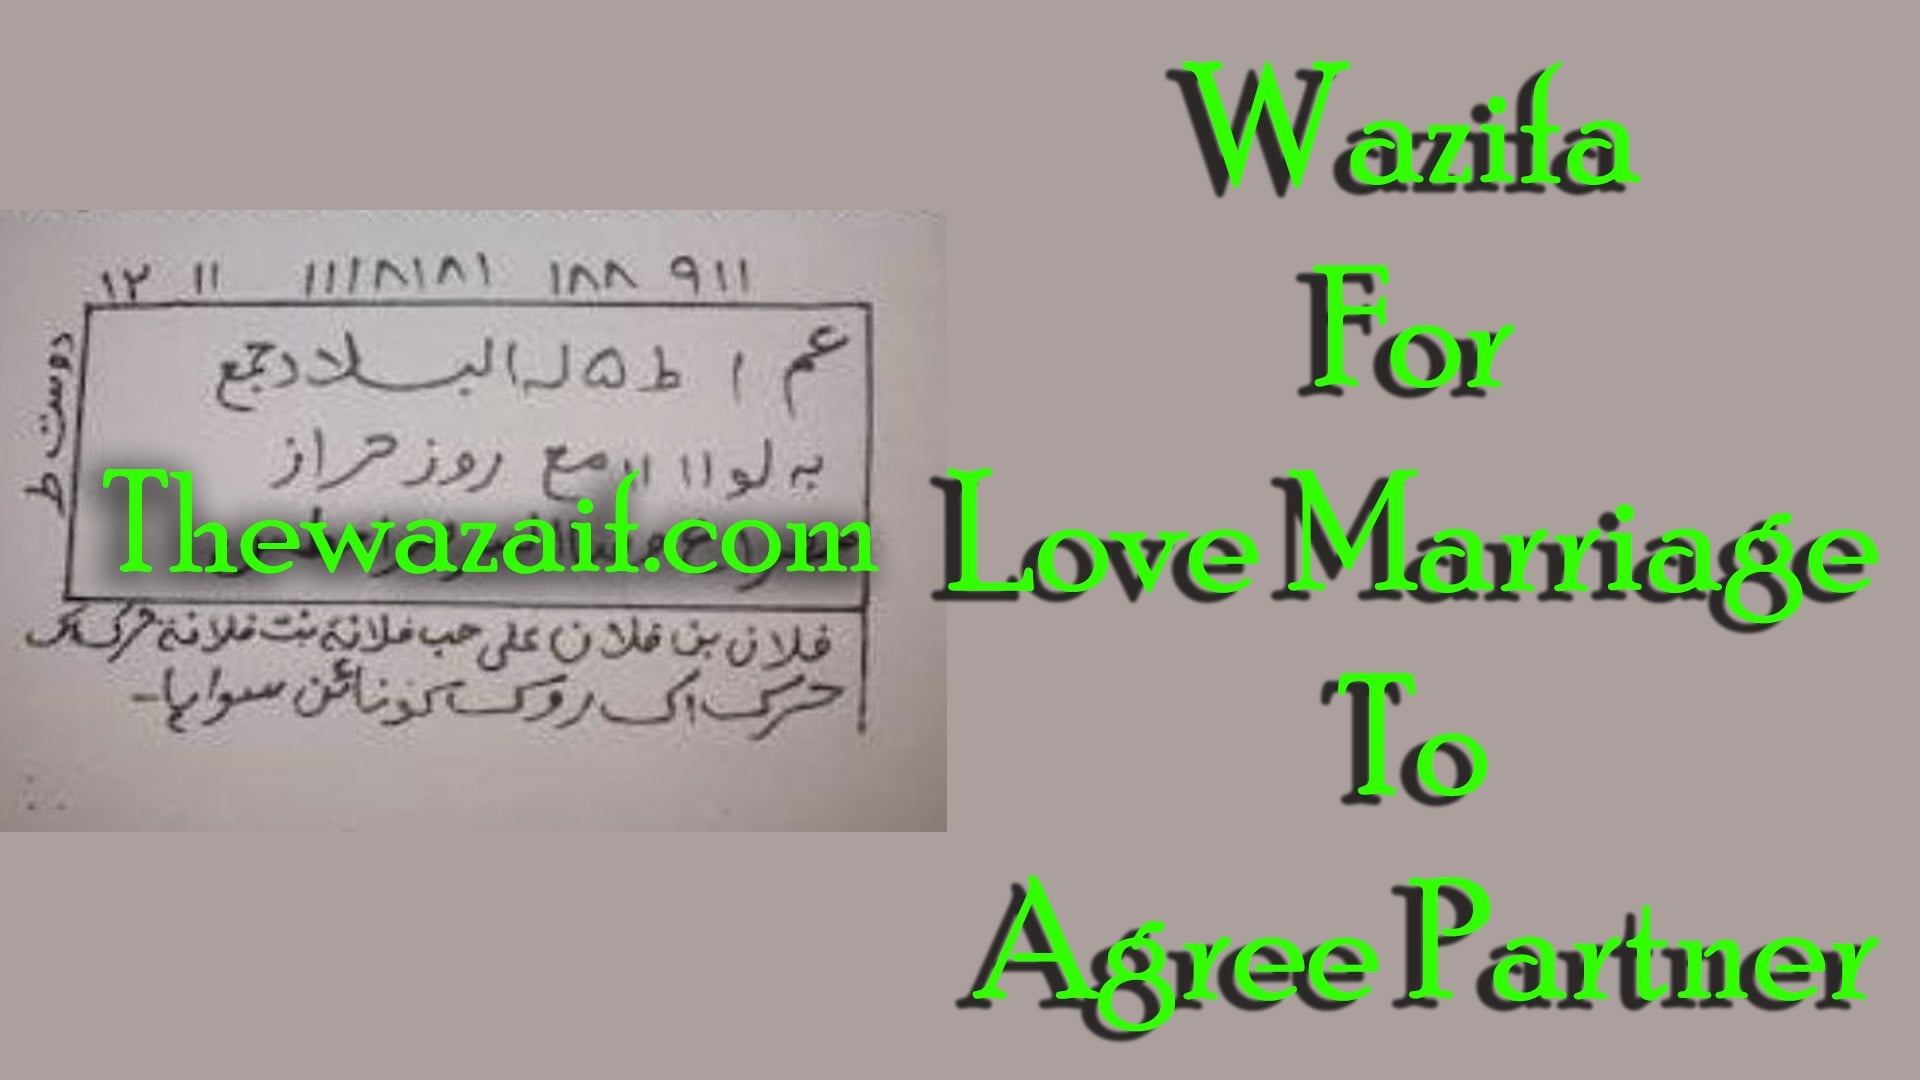 Powerful Wazifa For Love Marriage To Agree Partner